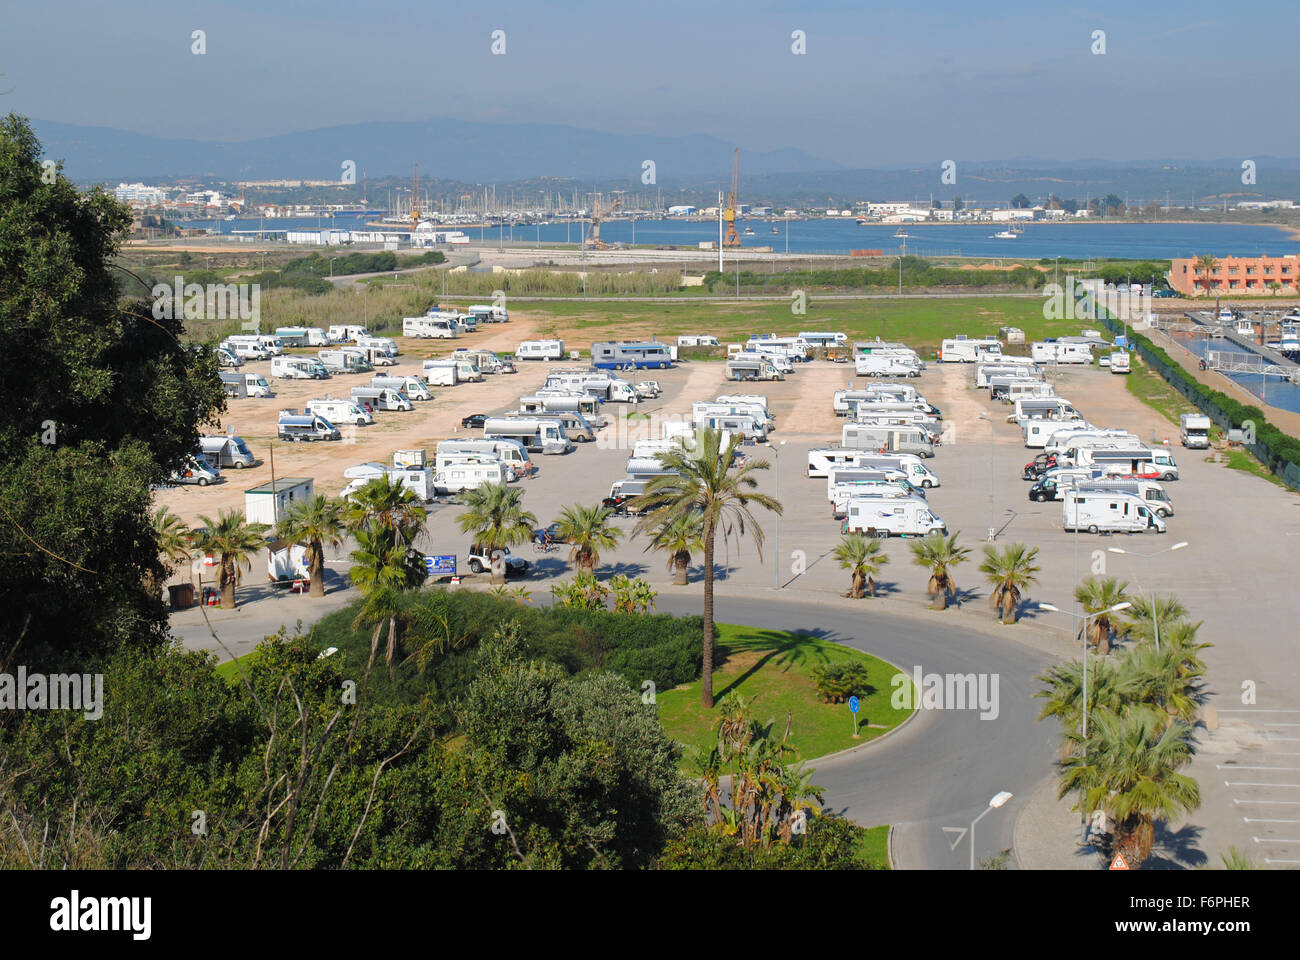 A large motorhome parking area next to the marina in Portimão, Portugal. - Stock Image